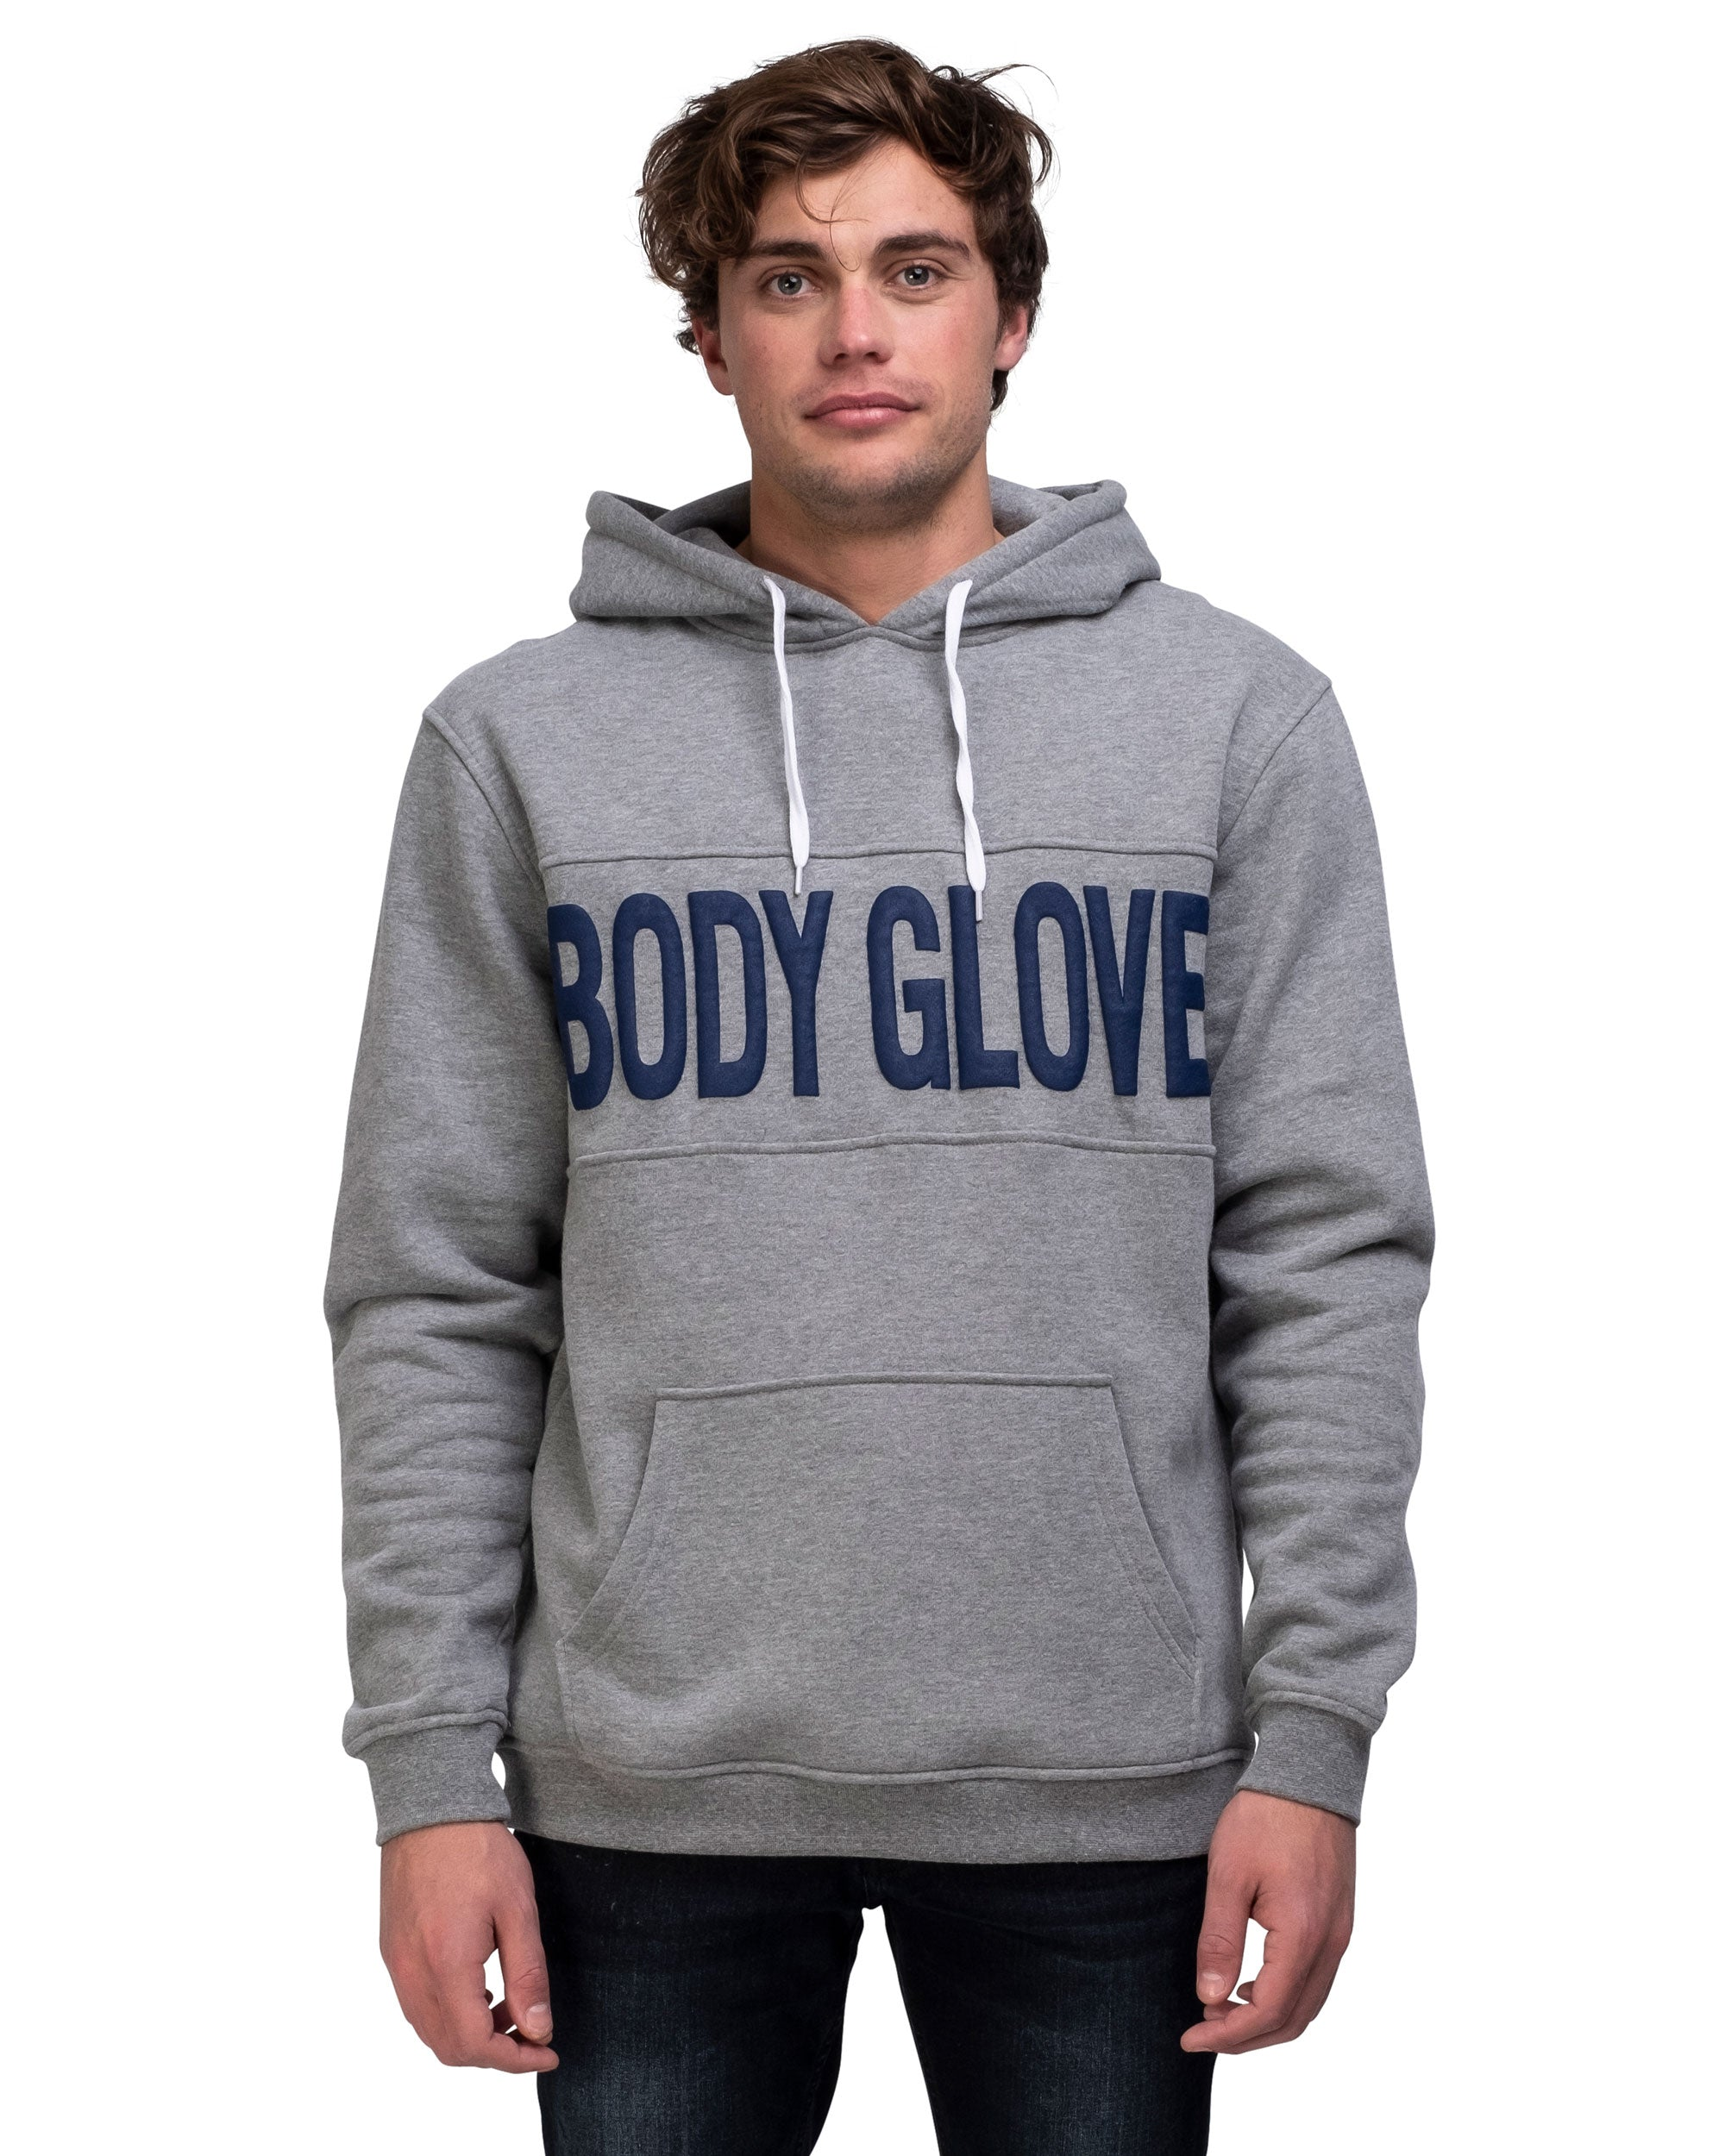 Body Glove Hoodie - Dark Heather